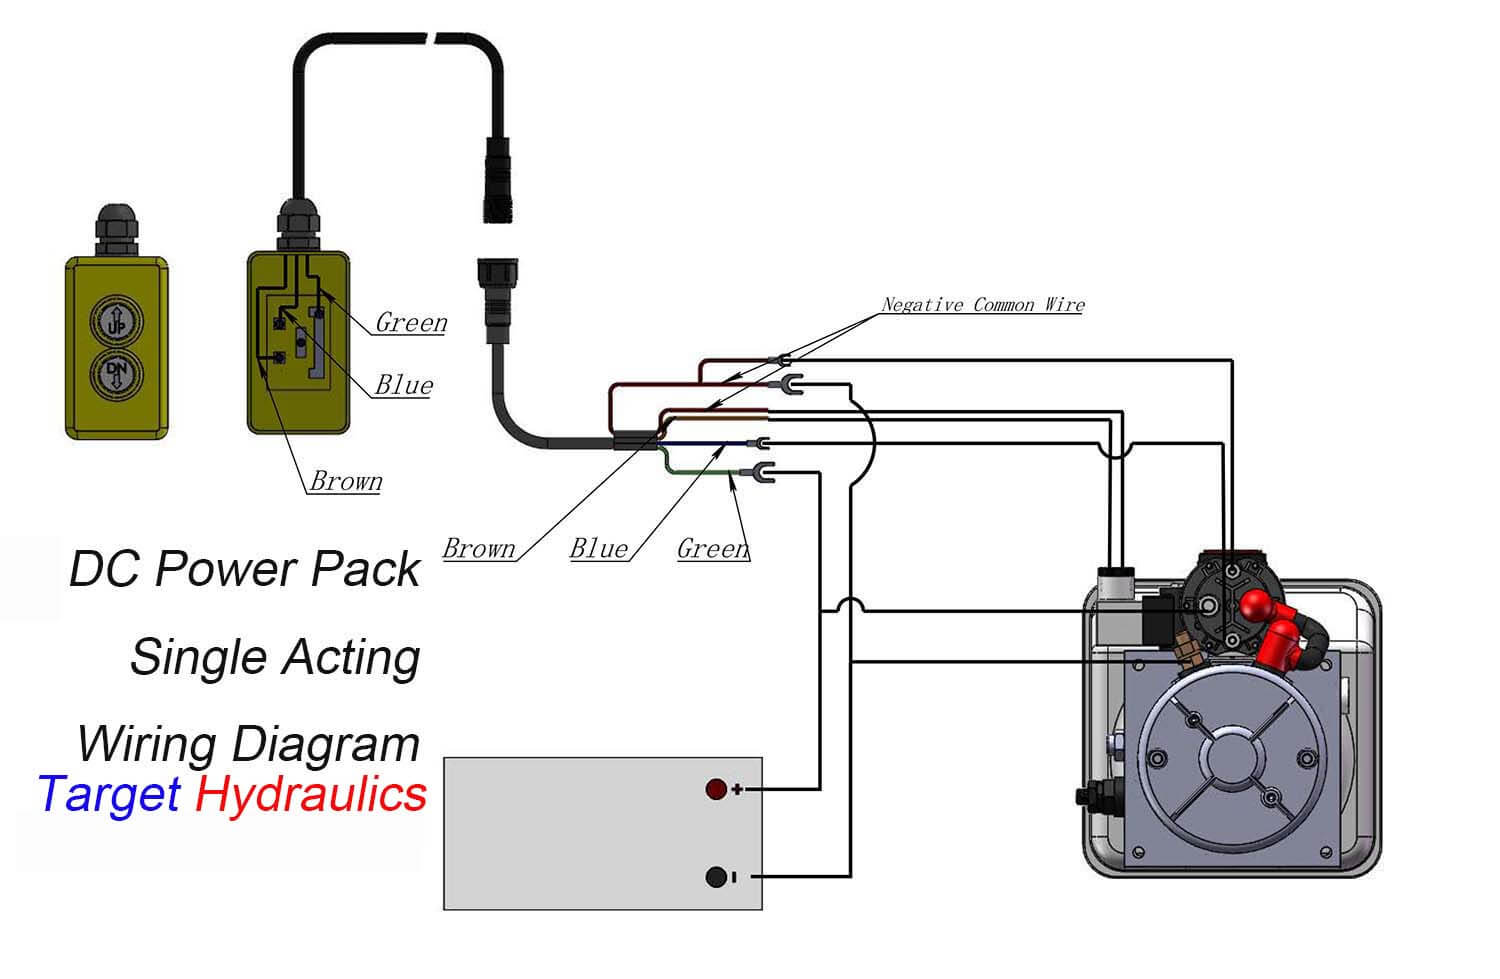 How to Wire_DC Motor Single Acting Power Pack how to wire hydraulic power pack,power unit diagram design 220 volt wiring diagram at edmiracle.co